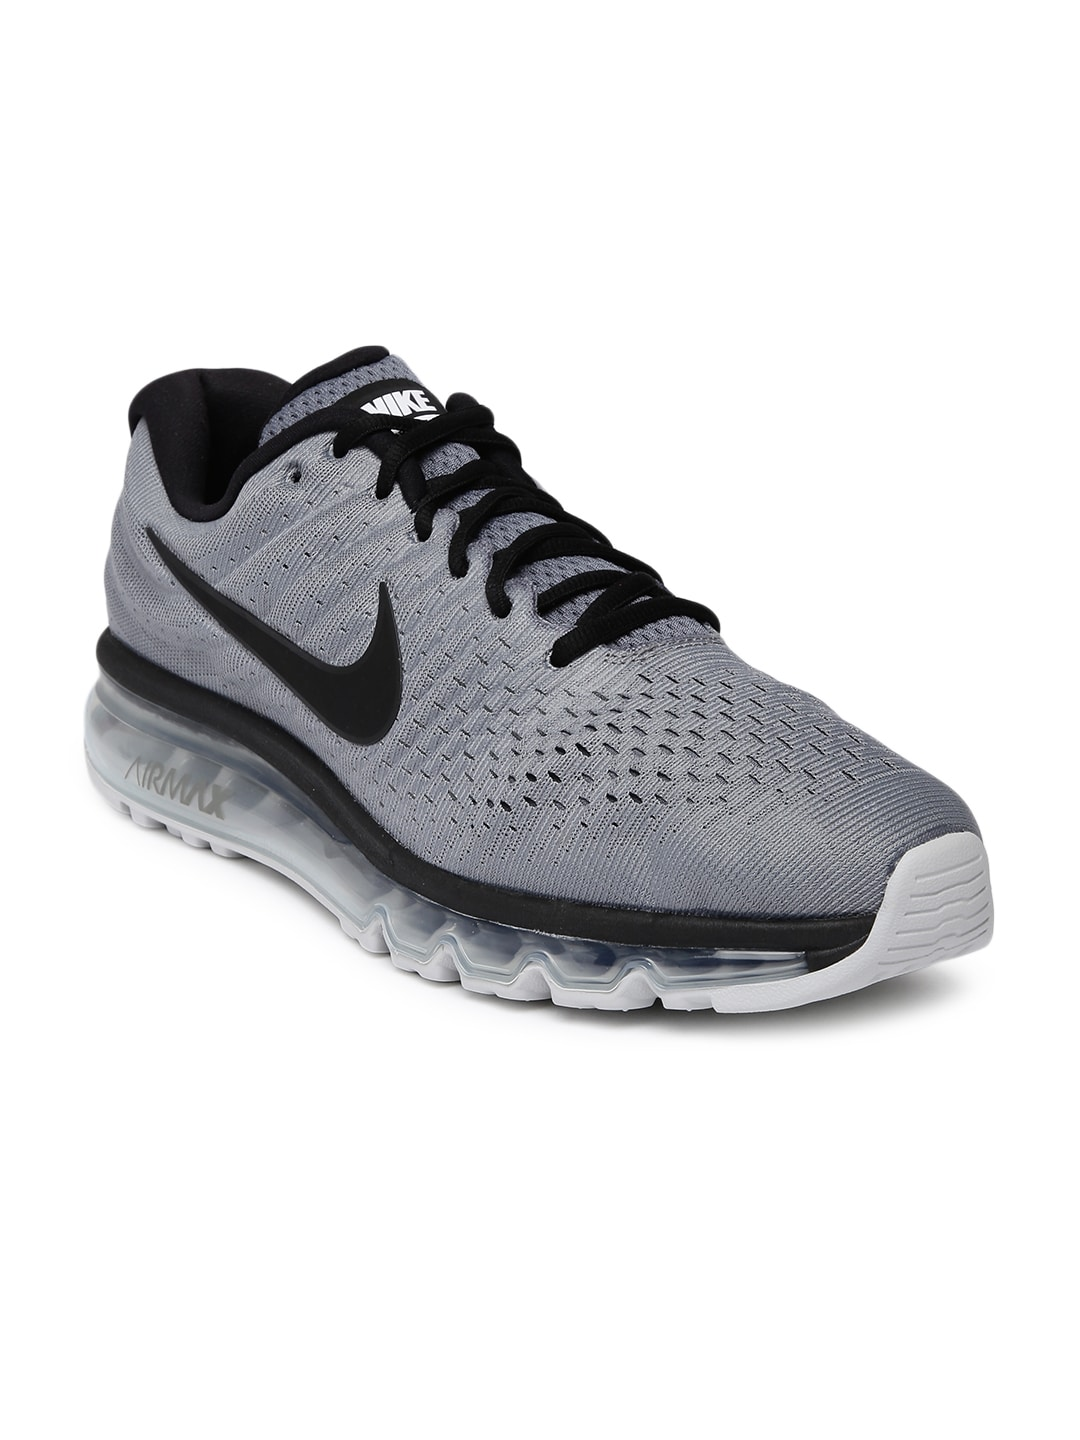 buy online d34fc f9a8a Nike Air Max Shoes - Buy Nike Air Max Shoes Online for Men   Women